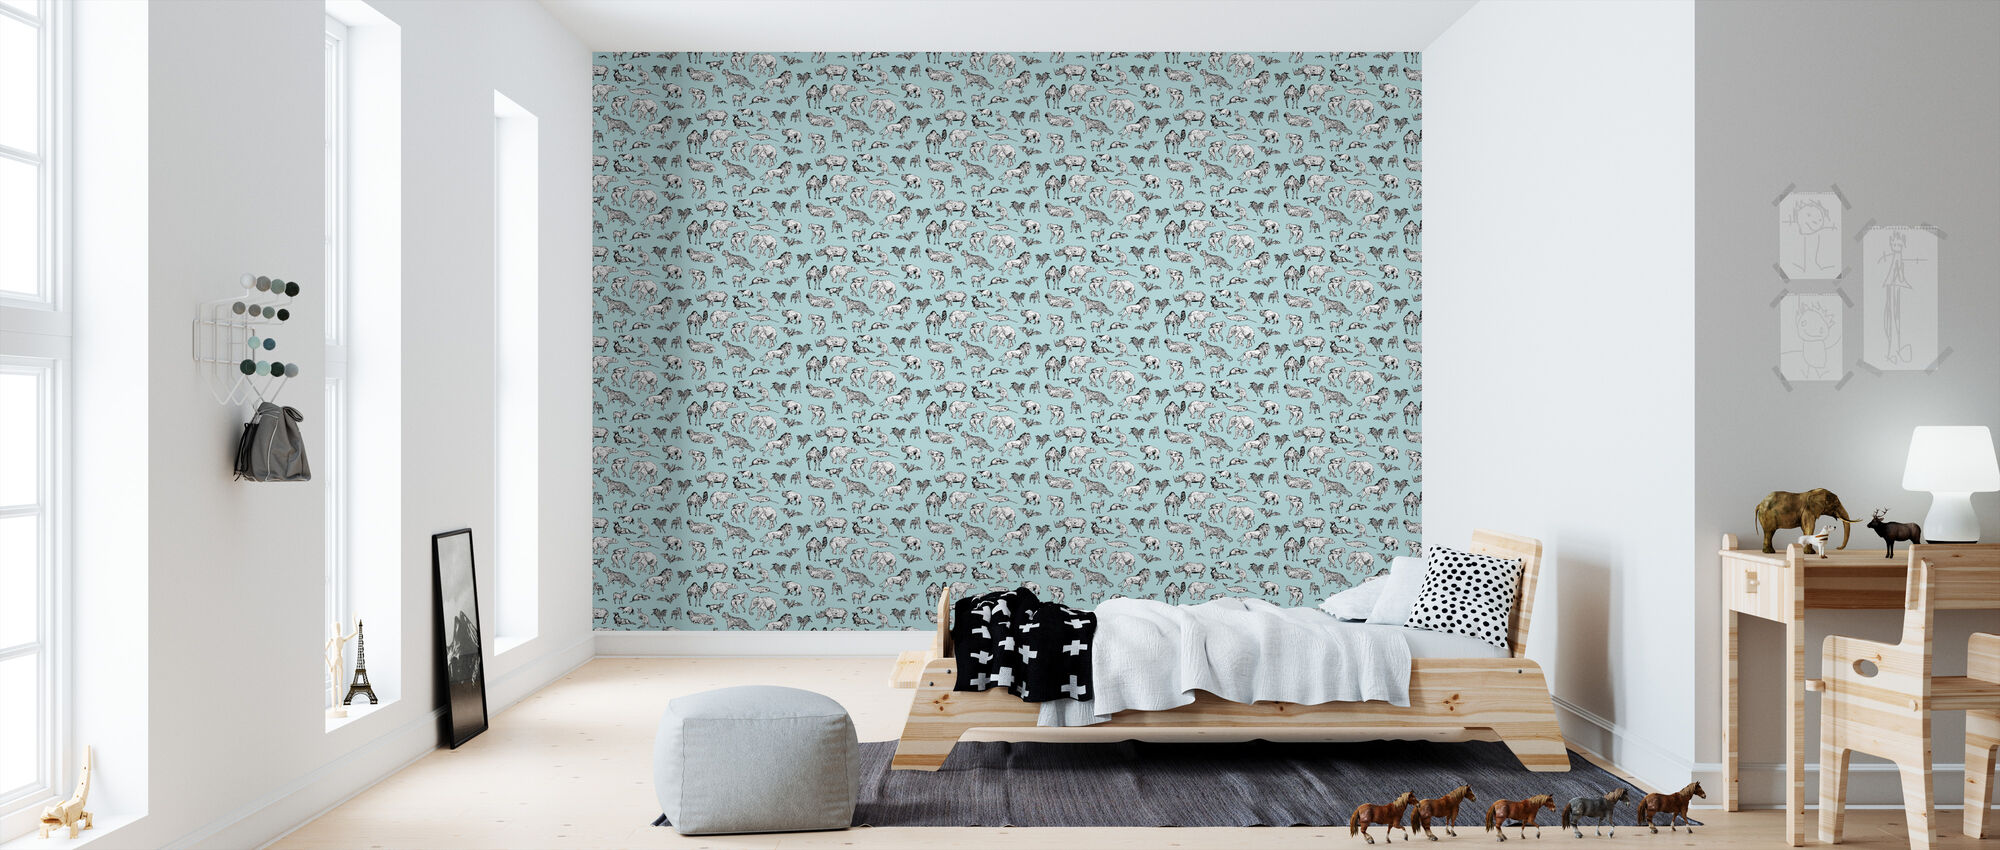 Lots of Animals Blue - Wallpaper - Kids Room